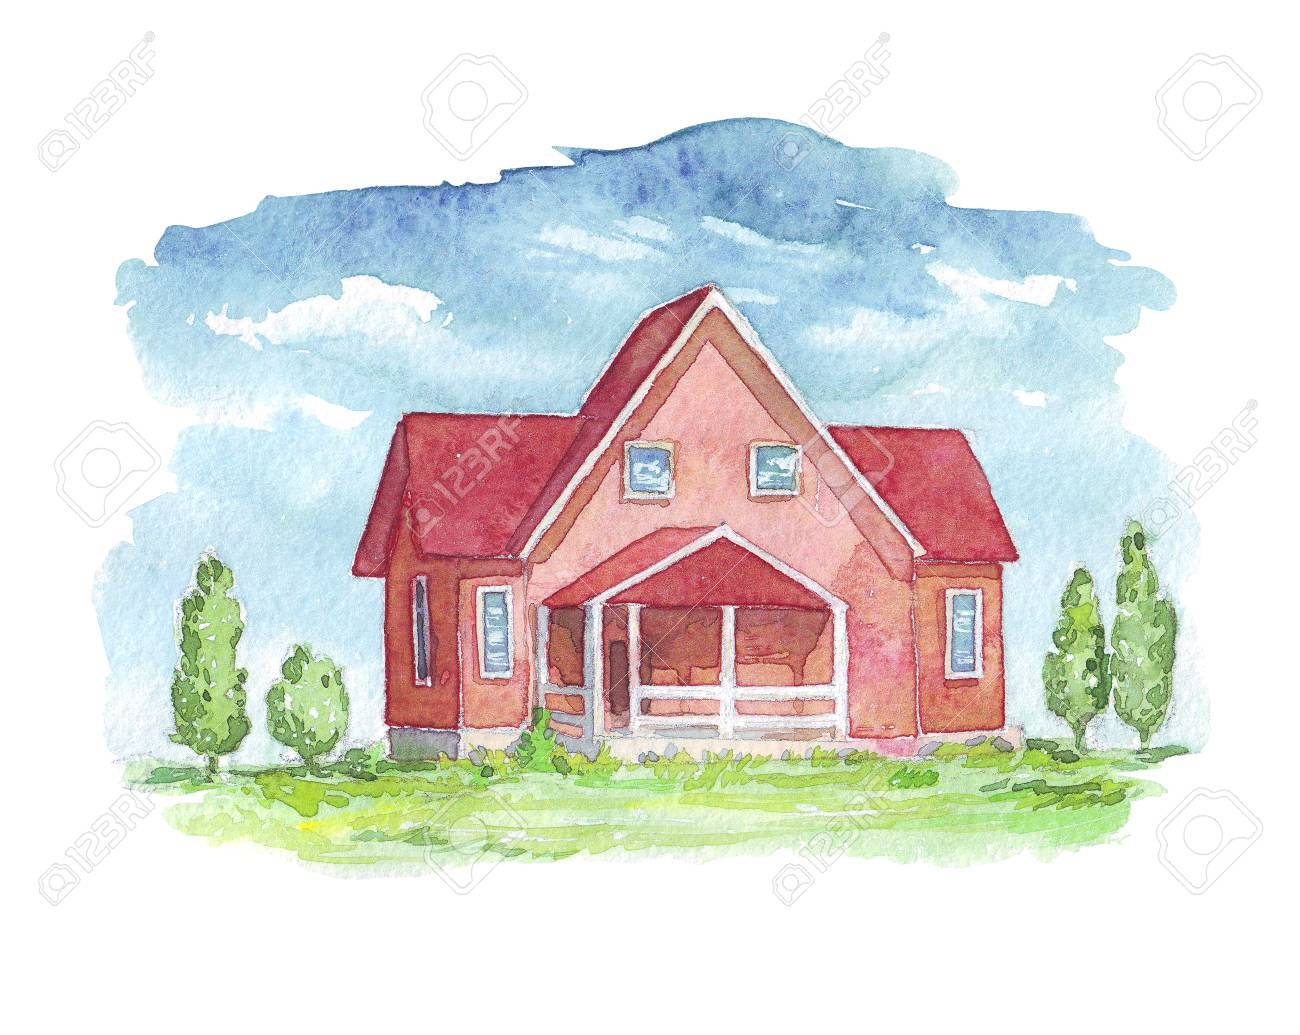 House Exterior Watercolor Illustration Stock Photo, Picture And ...